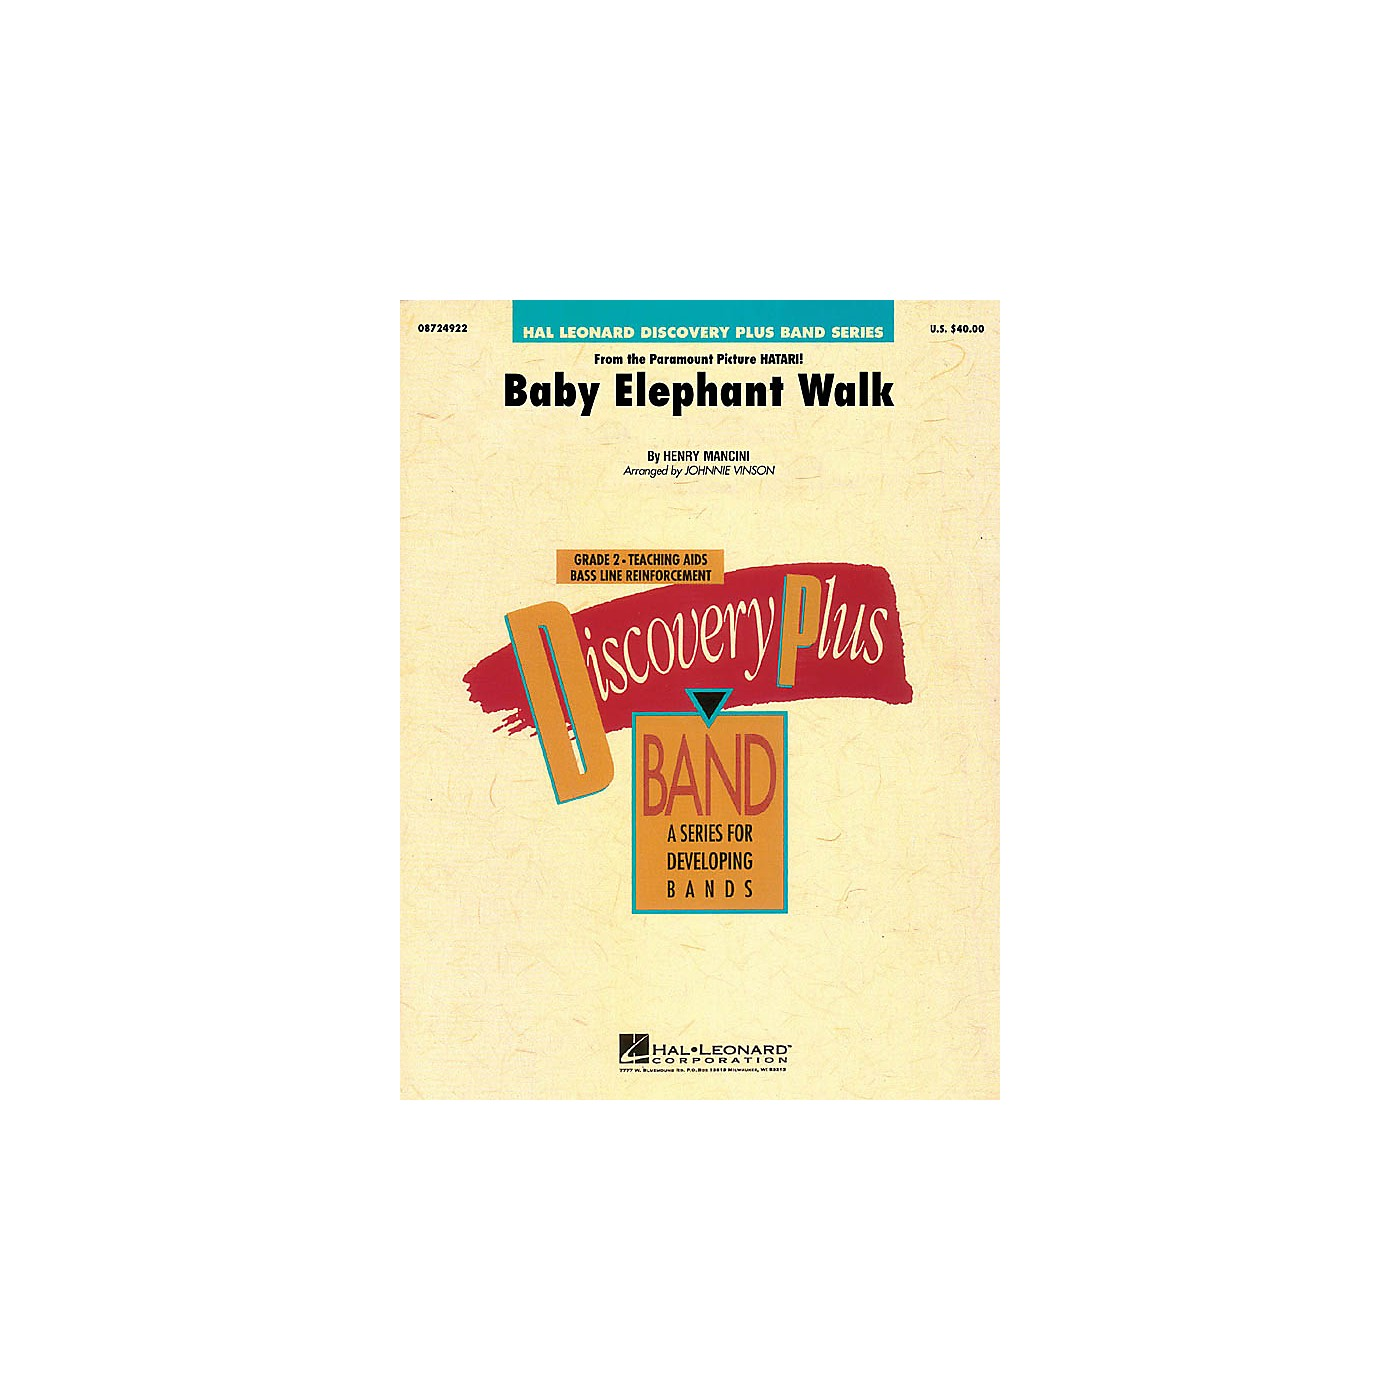 Hal Leonard Baby Elephant Walk - Discovery Plus Concert Band Series Level 2 arranged by Johnnie Vinson thumbnail